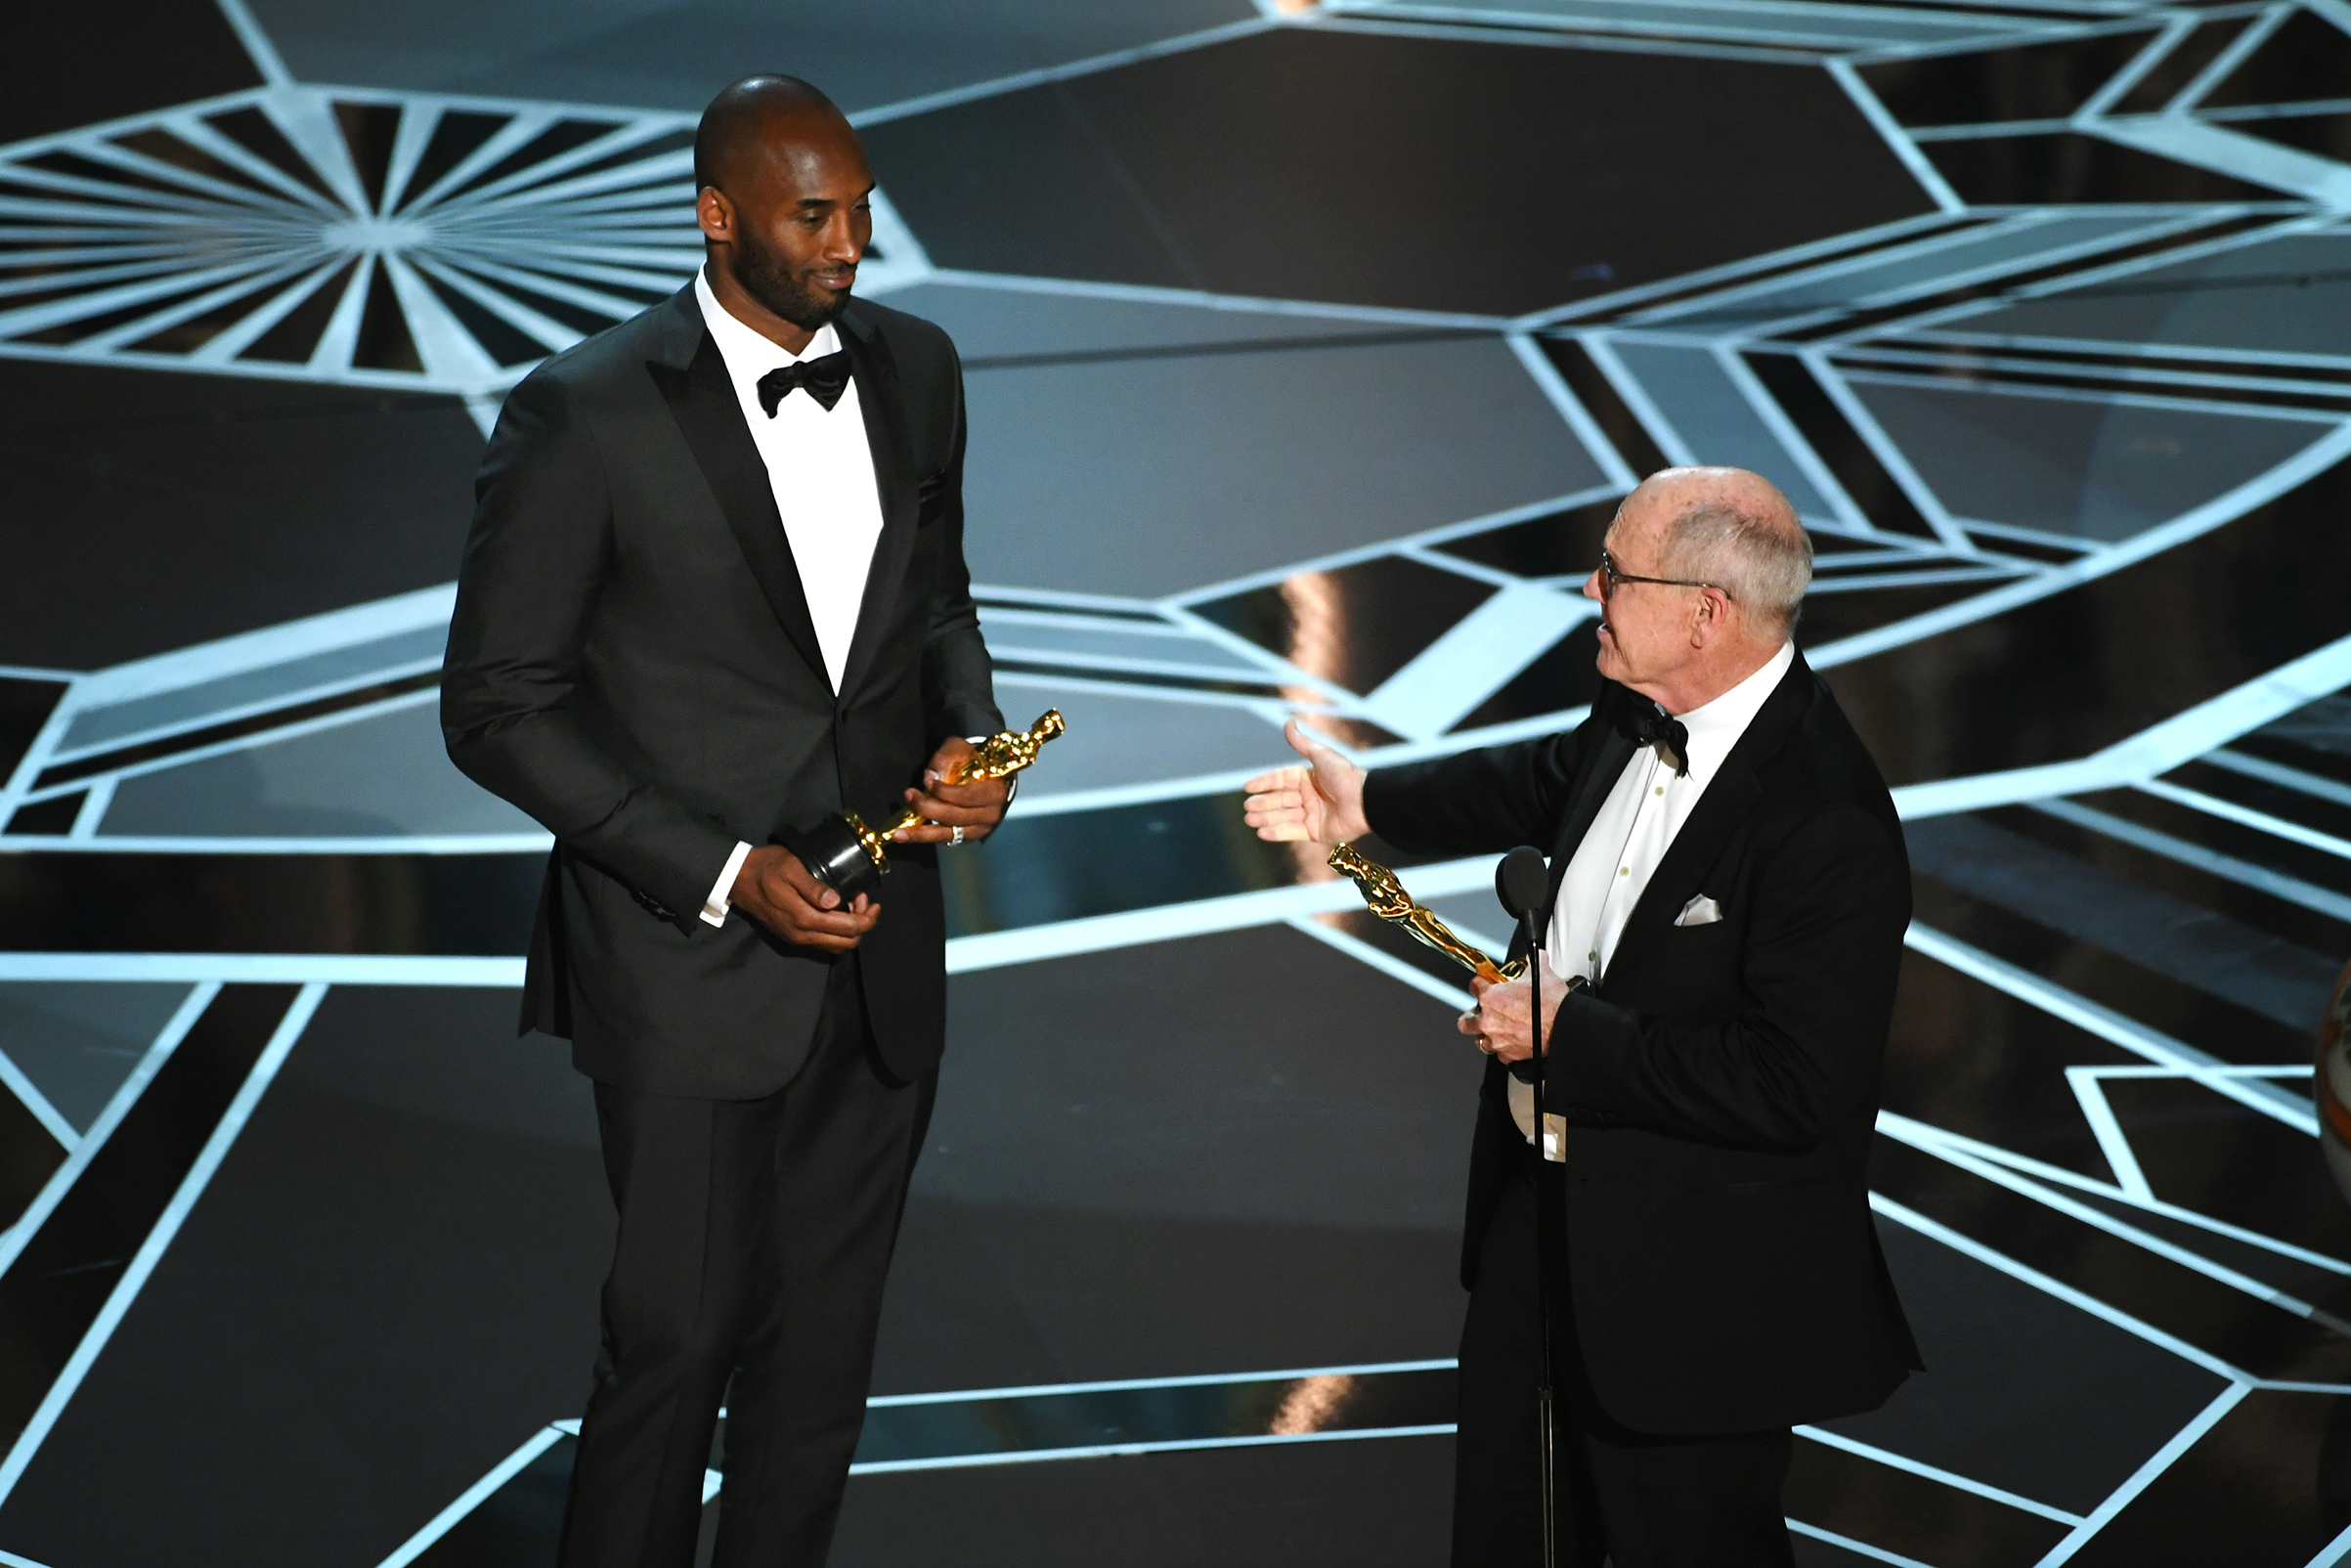 Filmmakers Kobe Bryant and Glen Keane accept Best Animated Short Film for 'Dear Basketball' onstage during the 90th Annual Academy Awards at the Dolby Theatre at Hollywood & Highland Center on March 4, 2018 in Hollywood.